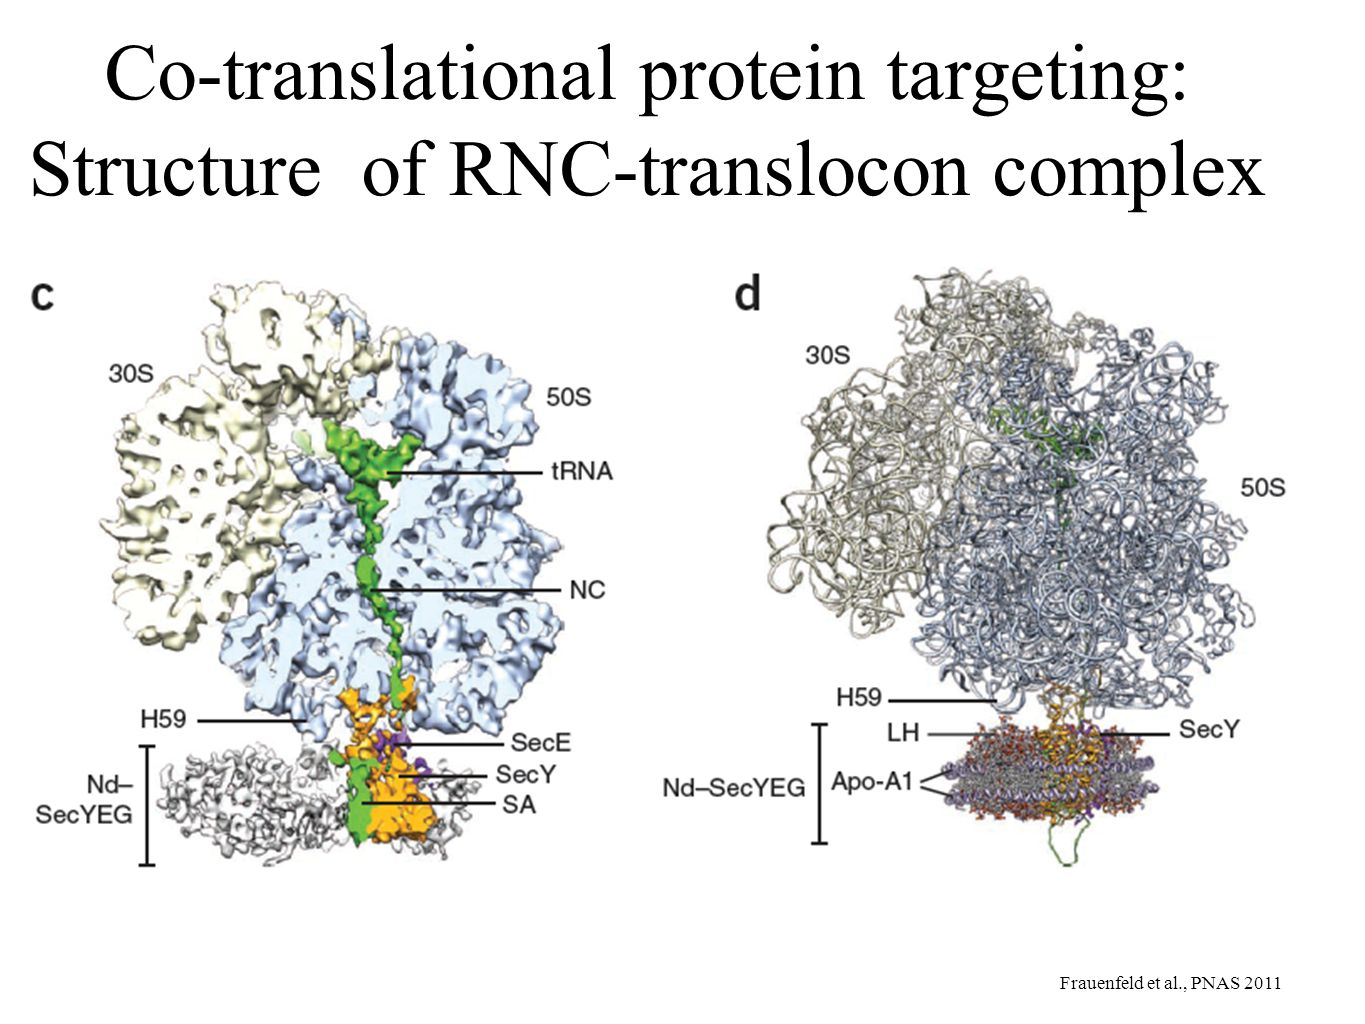 Co-translational protein targeting: Structure of RNC-translocon complex Frauenfeld et al., PNAS 2011